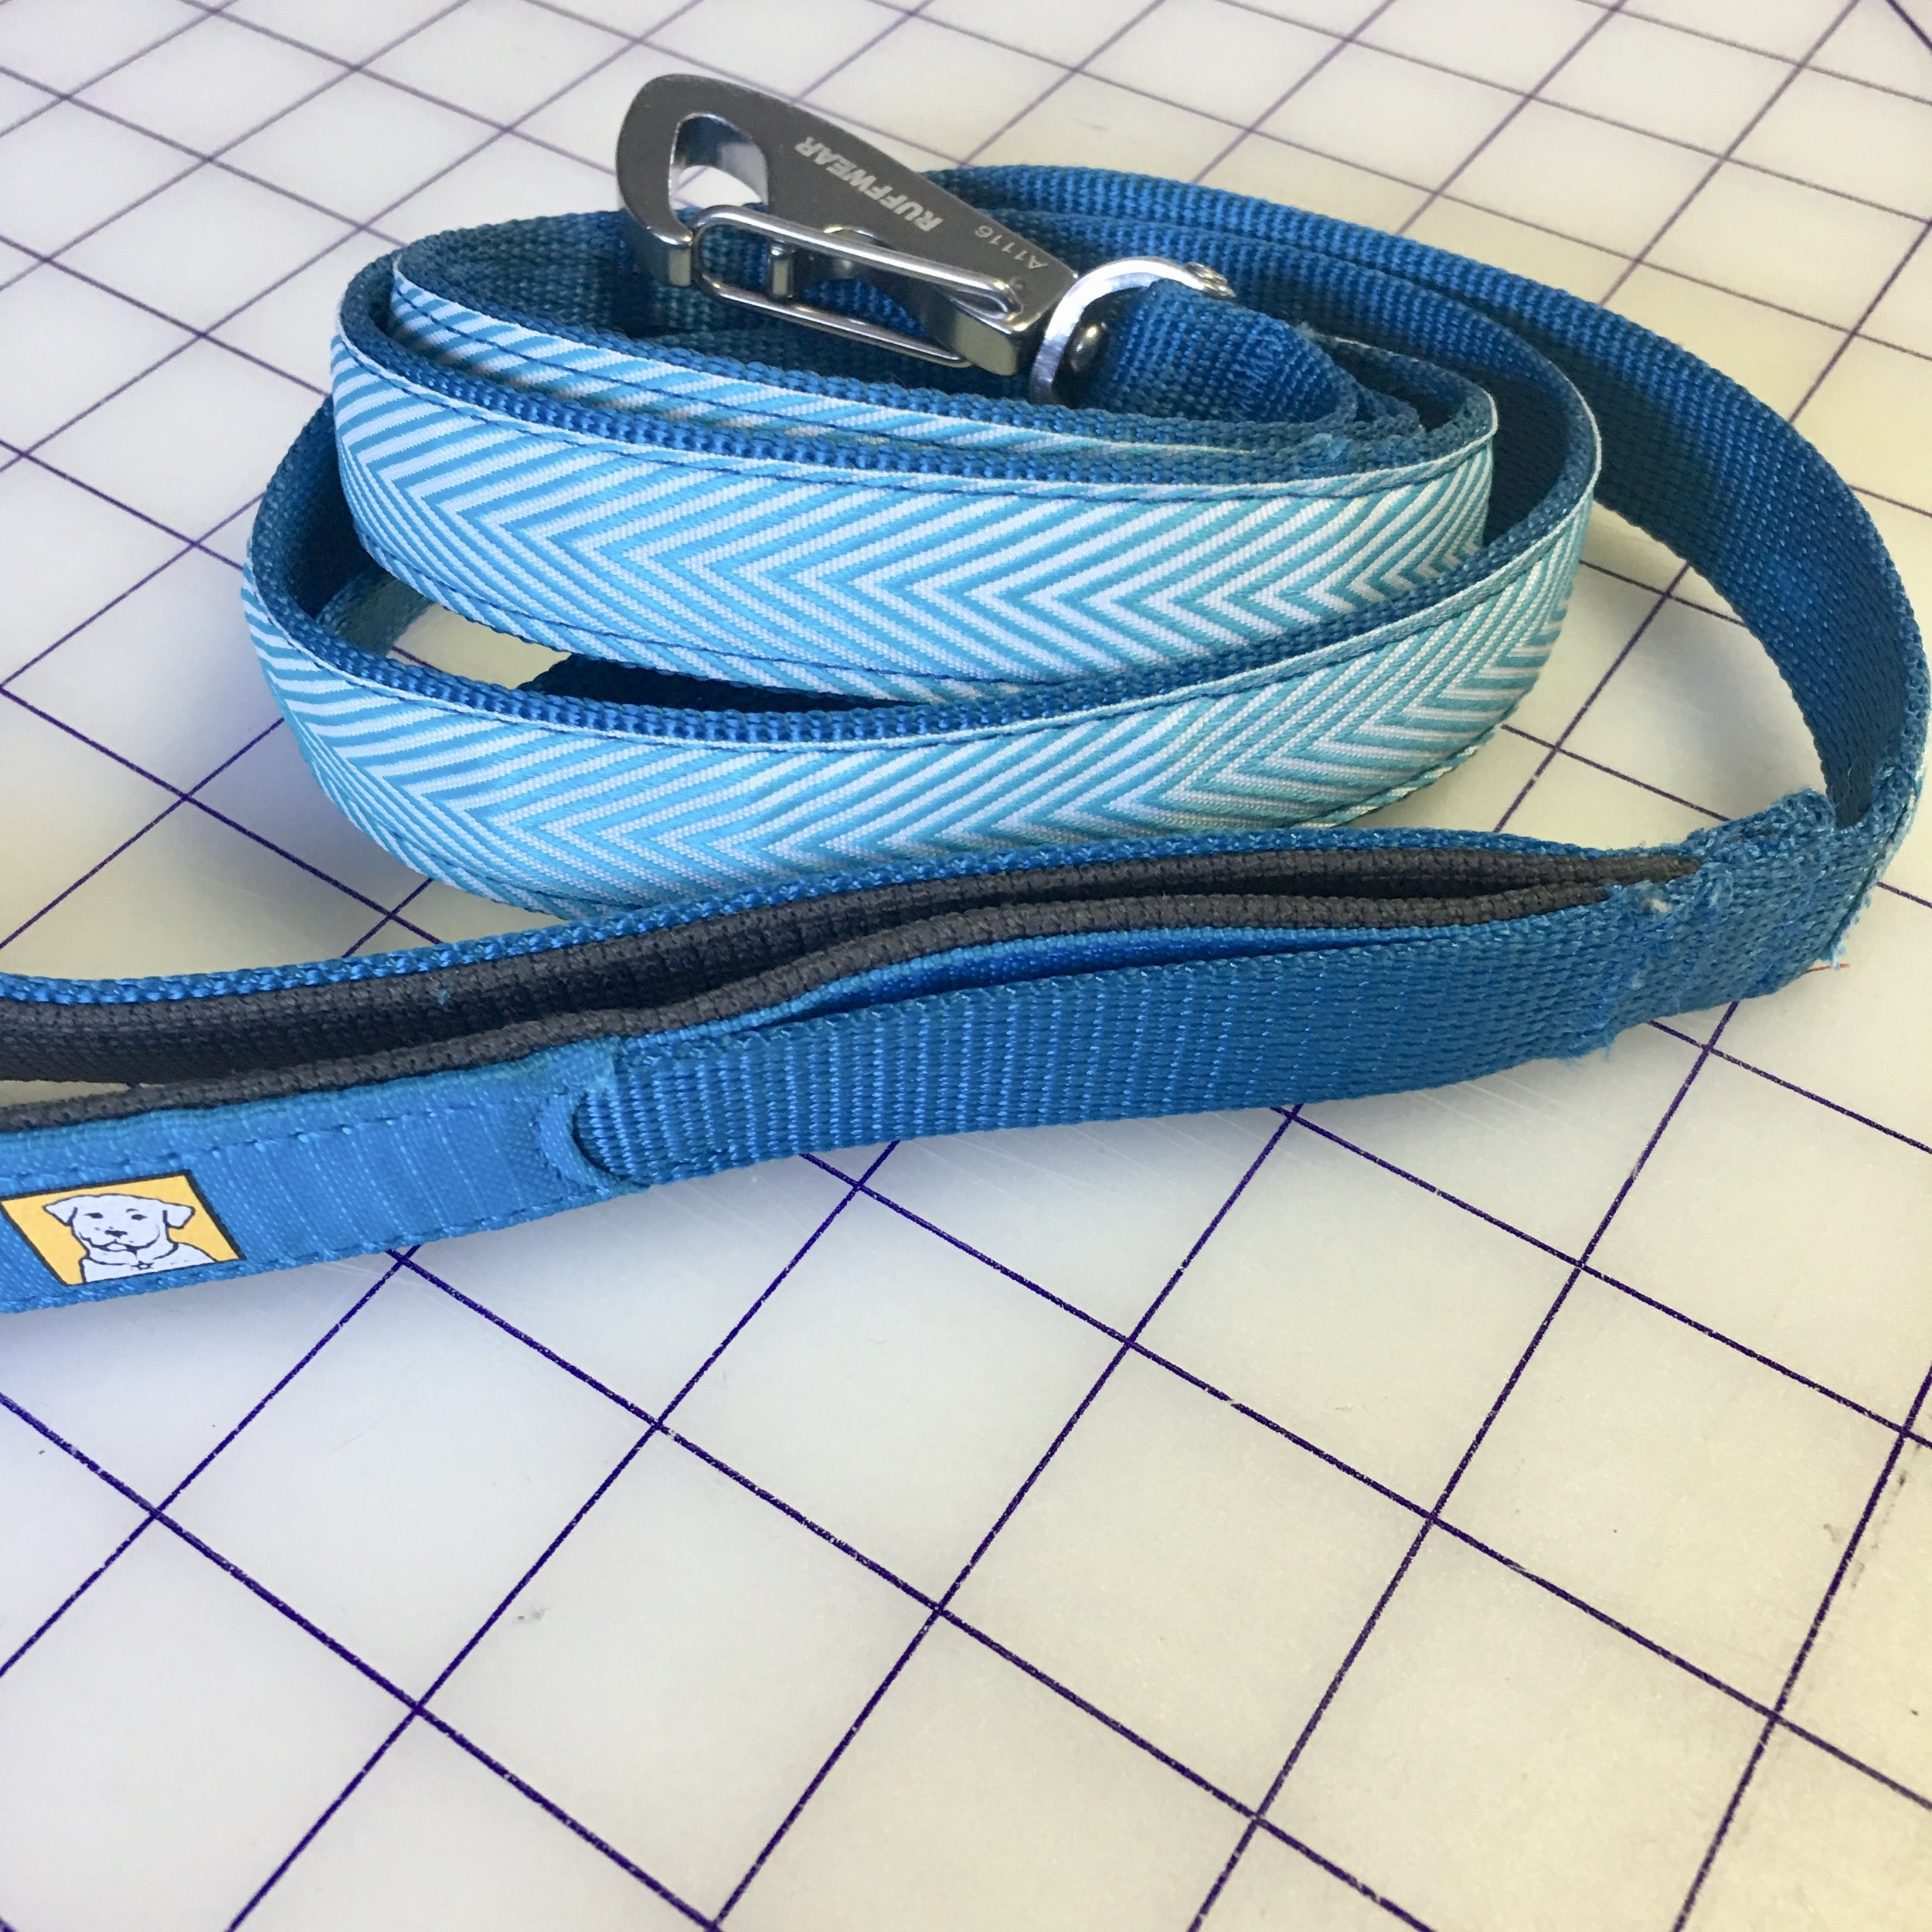 Repaired and embellished dog leash